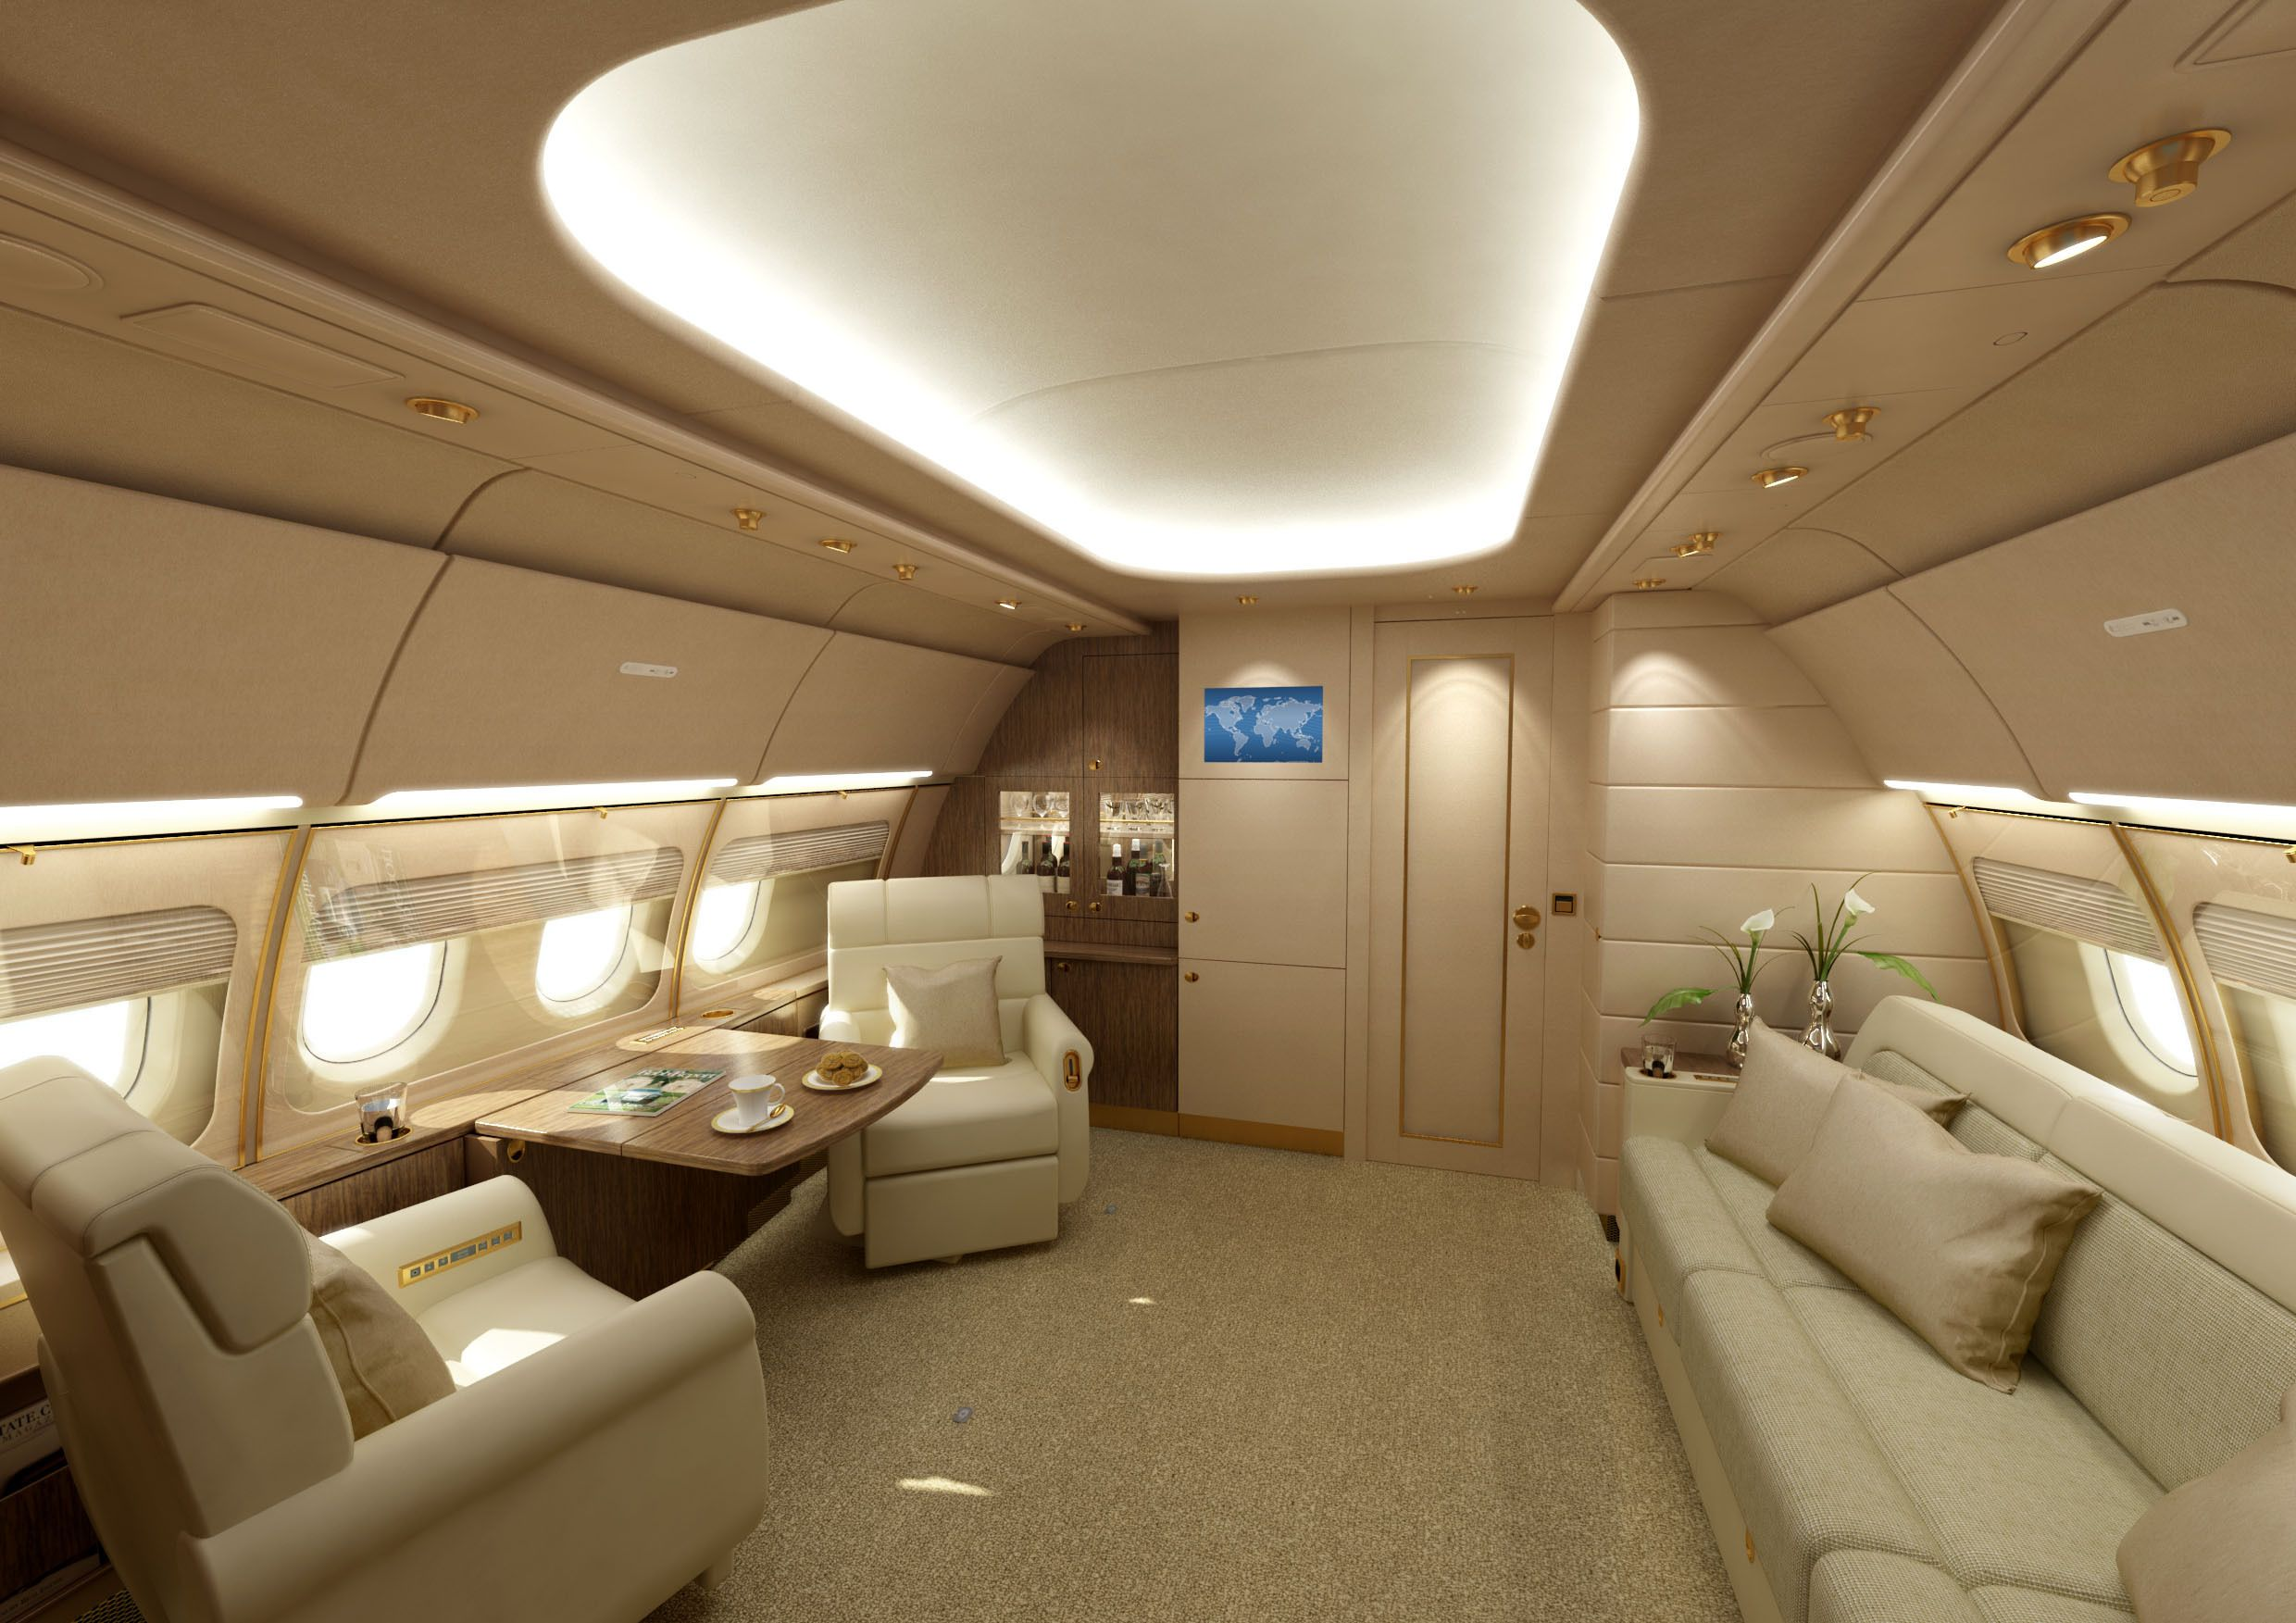 Incredible Custom Private Jet Interiors With Modern White ...